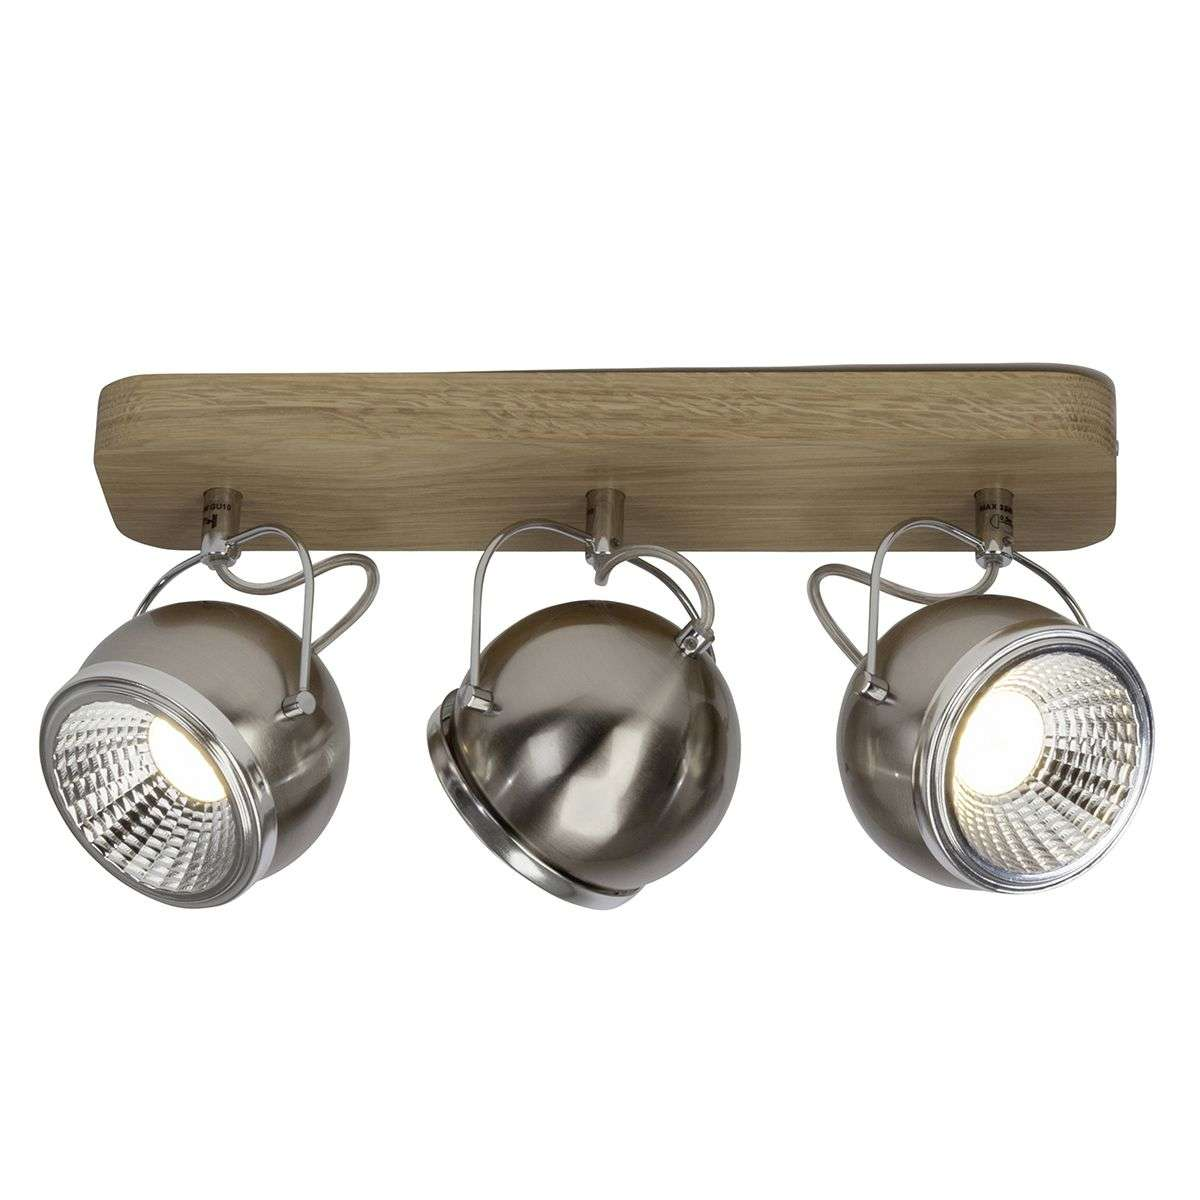 Drieflammige LED plafondspots Tribe met hout-1509187-31